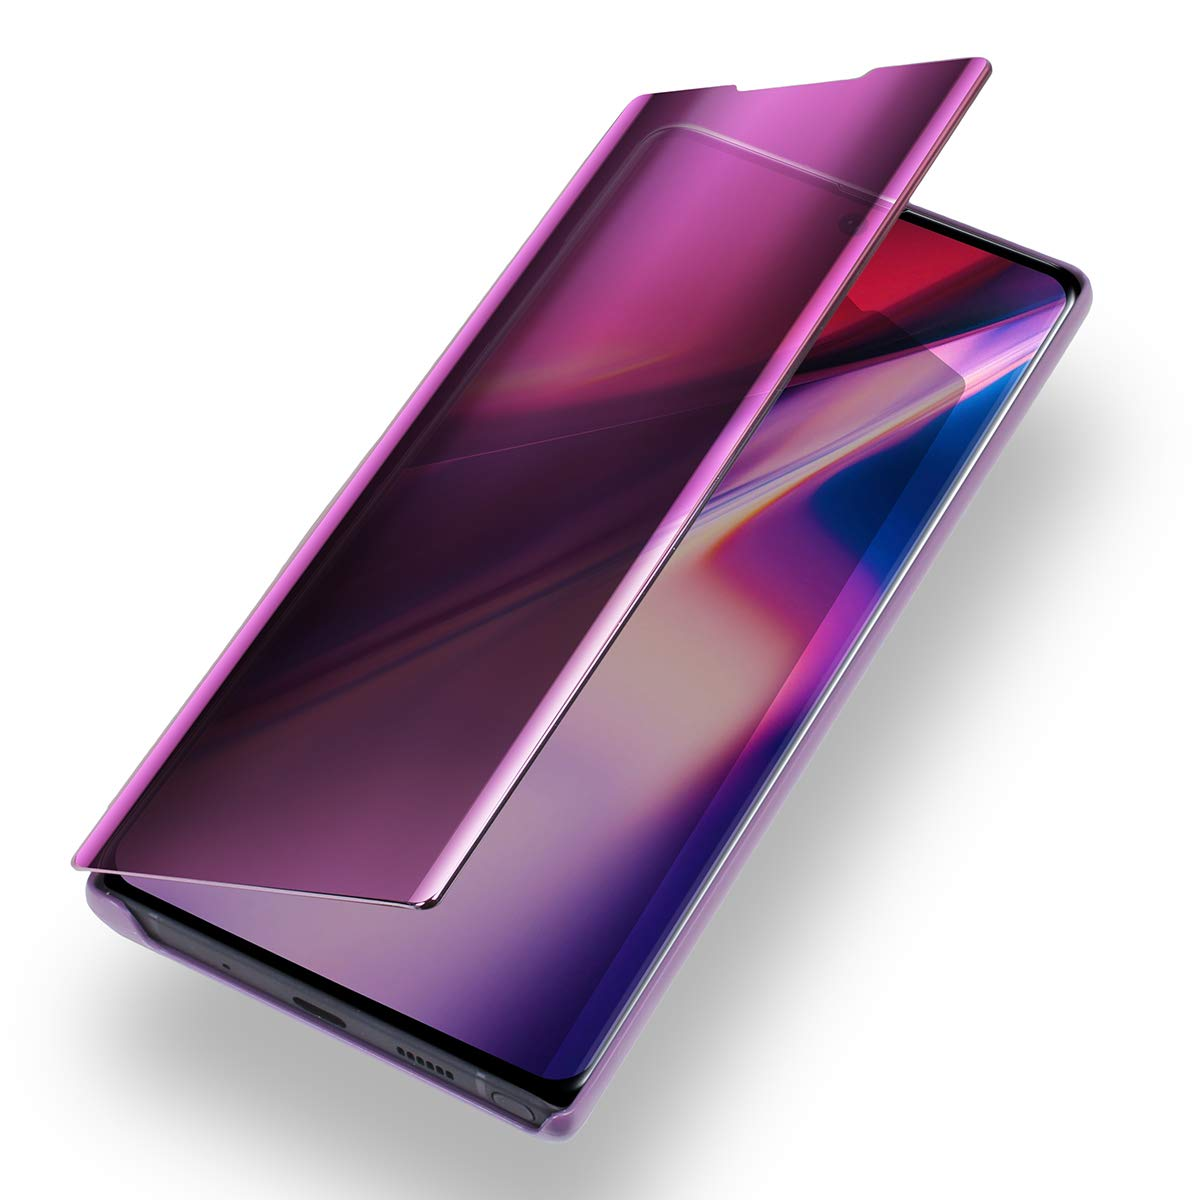 Luxury Flip Case Translucent View with Touch Screen Function AICase Flip Cover for Galaxy Note 10 Plus//10+ 5G Ocean Blue Mirror Screen Electroplate Kickstand Full Body Protective Case for Samsung Galaxy Note 10 Plus//10+ 5G